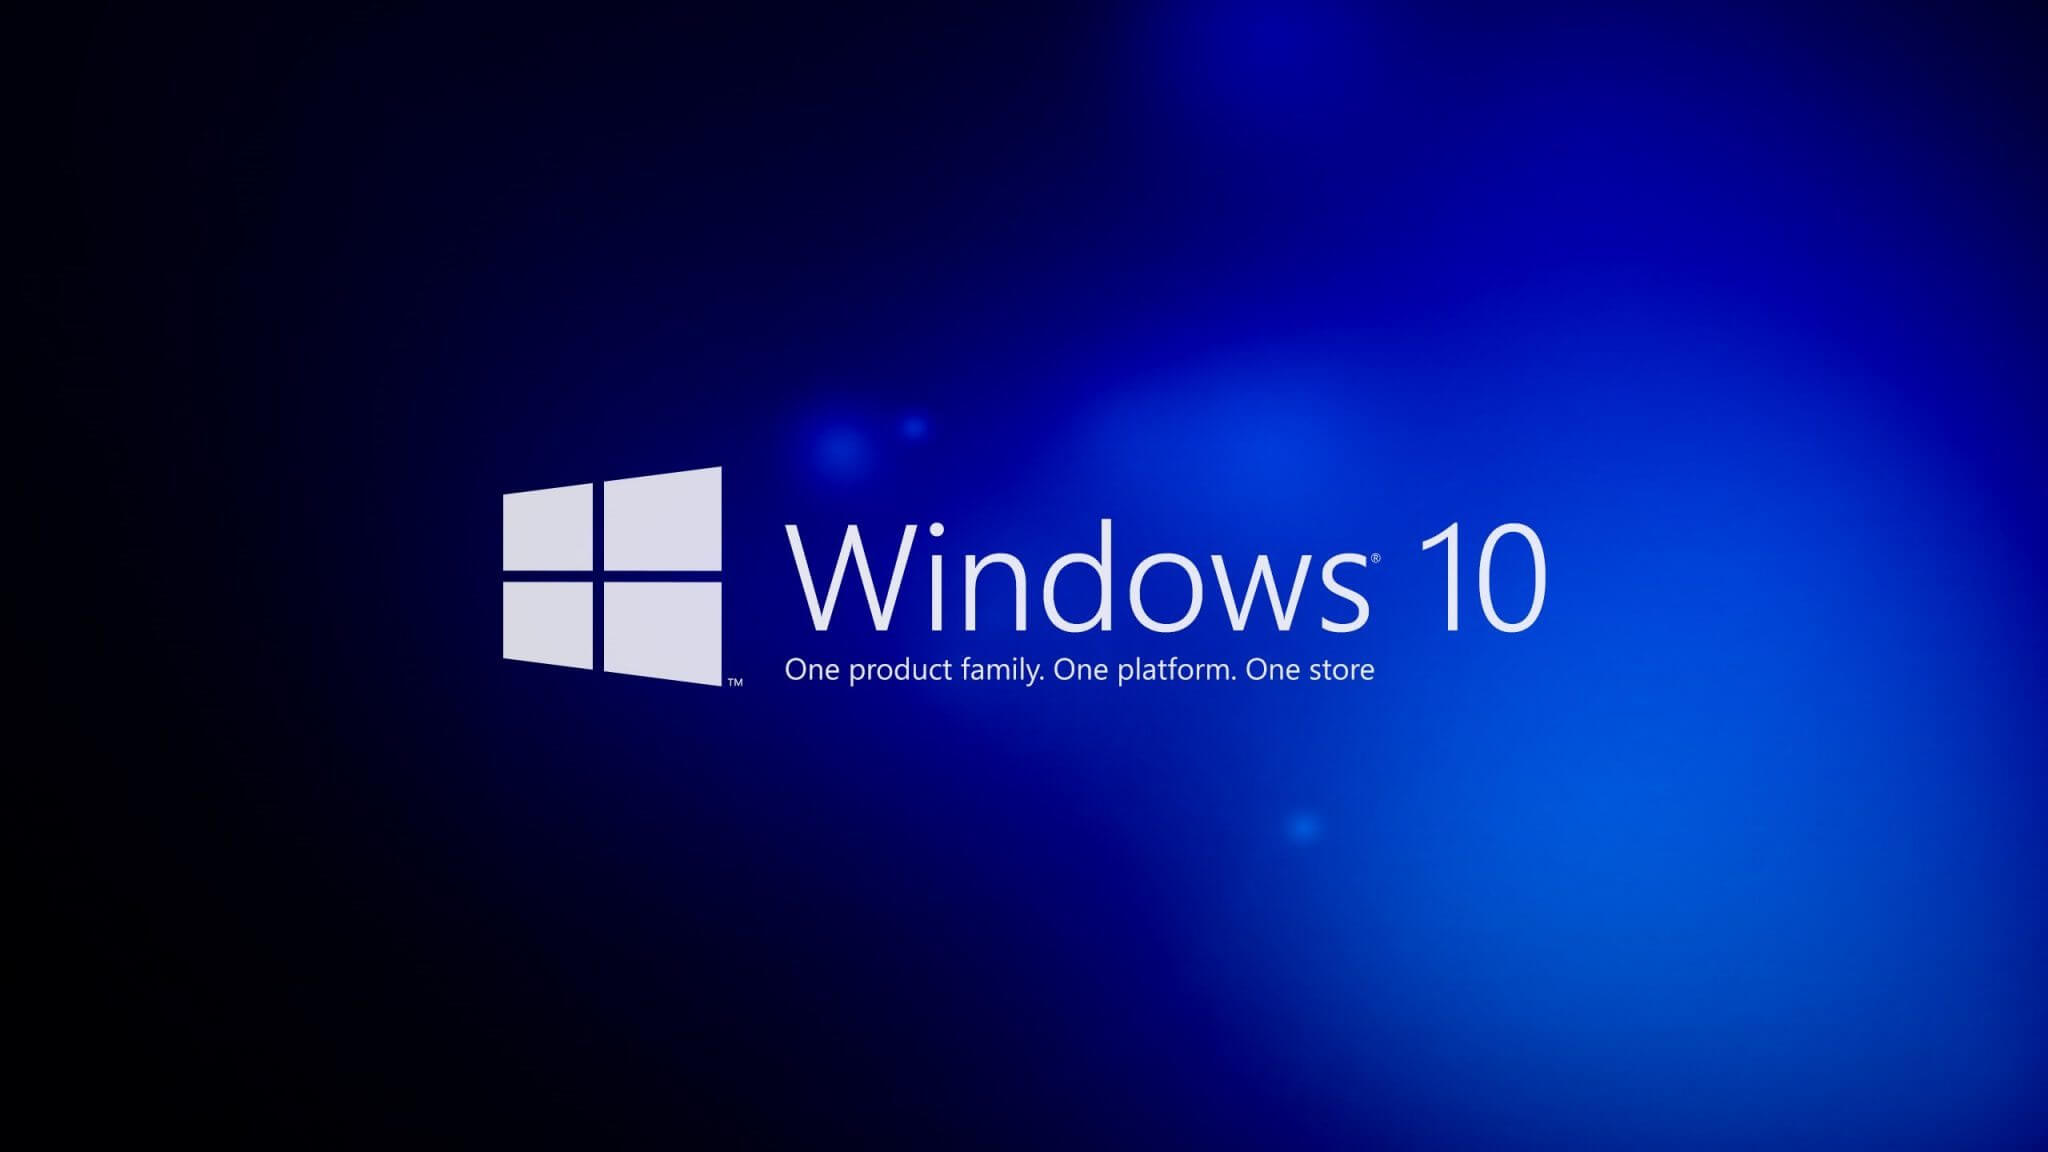 Windows 10 Technology HD Wide Wallpaper - Microsoft libera Windows 10 Insider Preview Build 14986 para PC. Confira as novidades